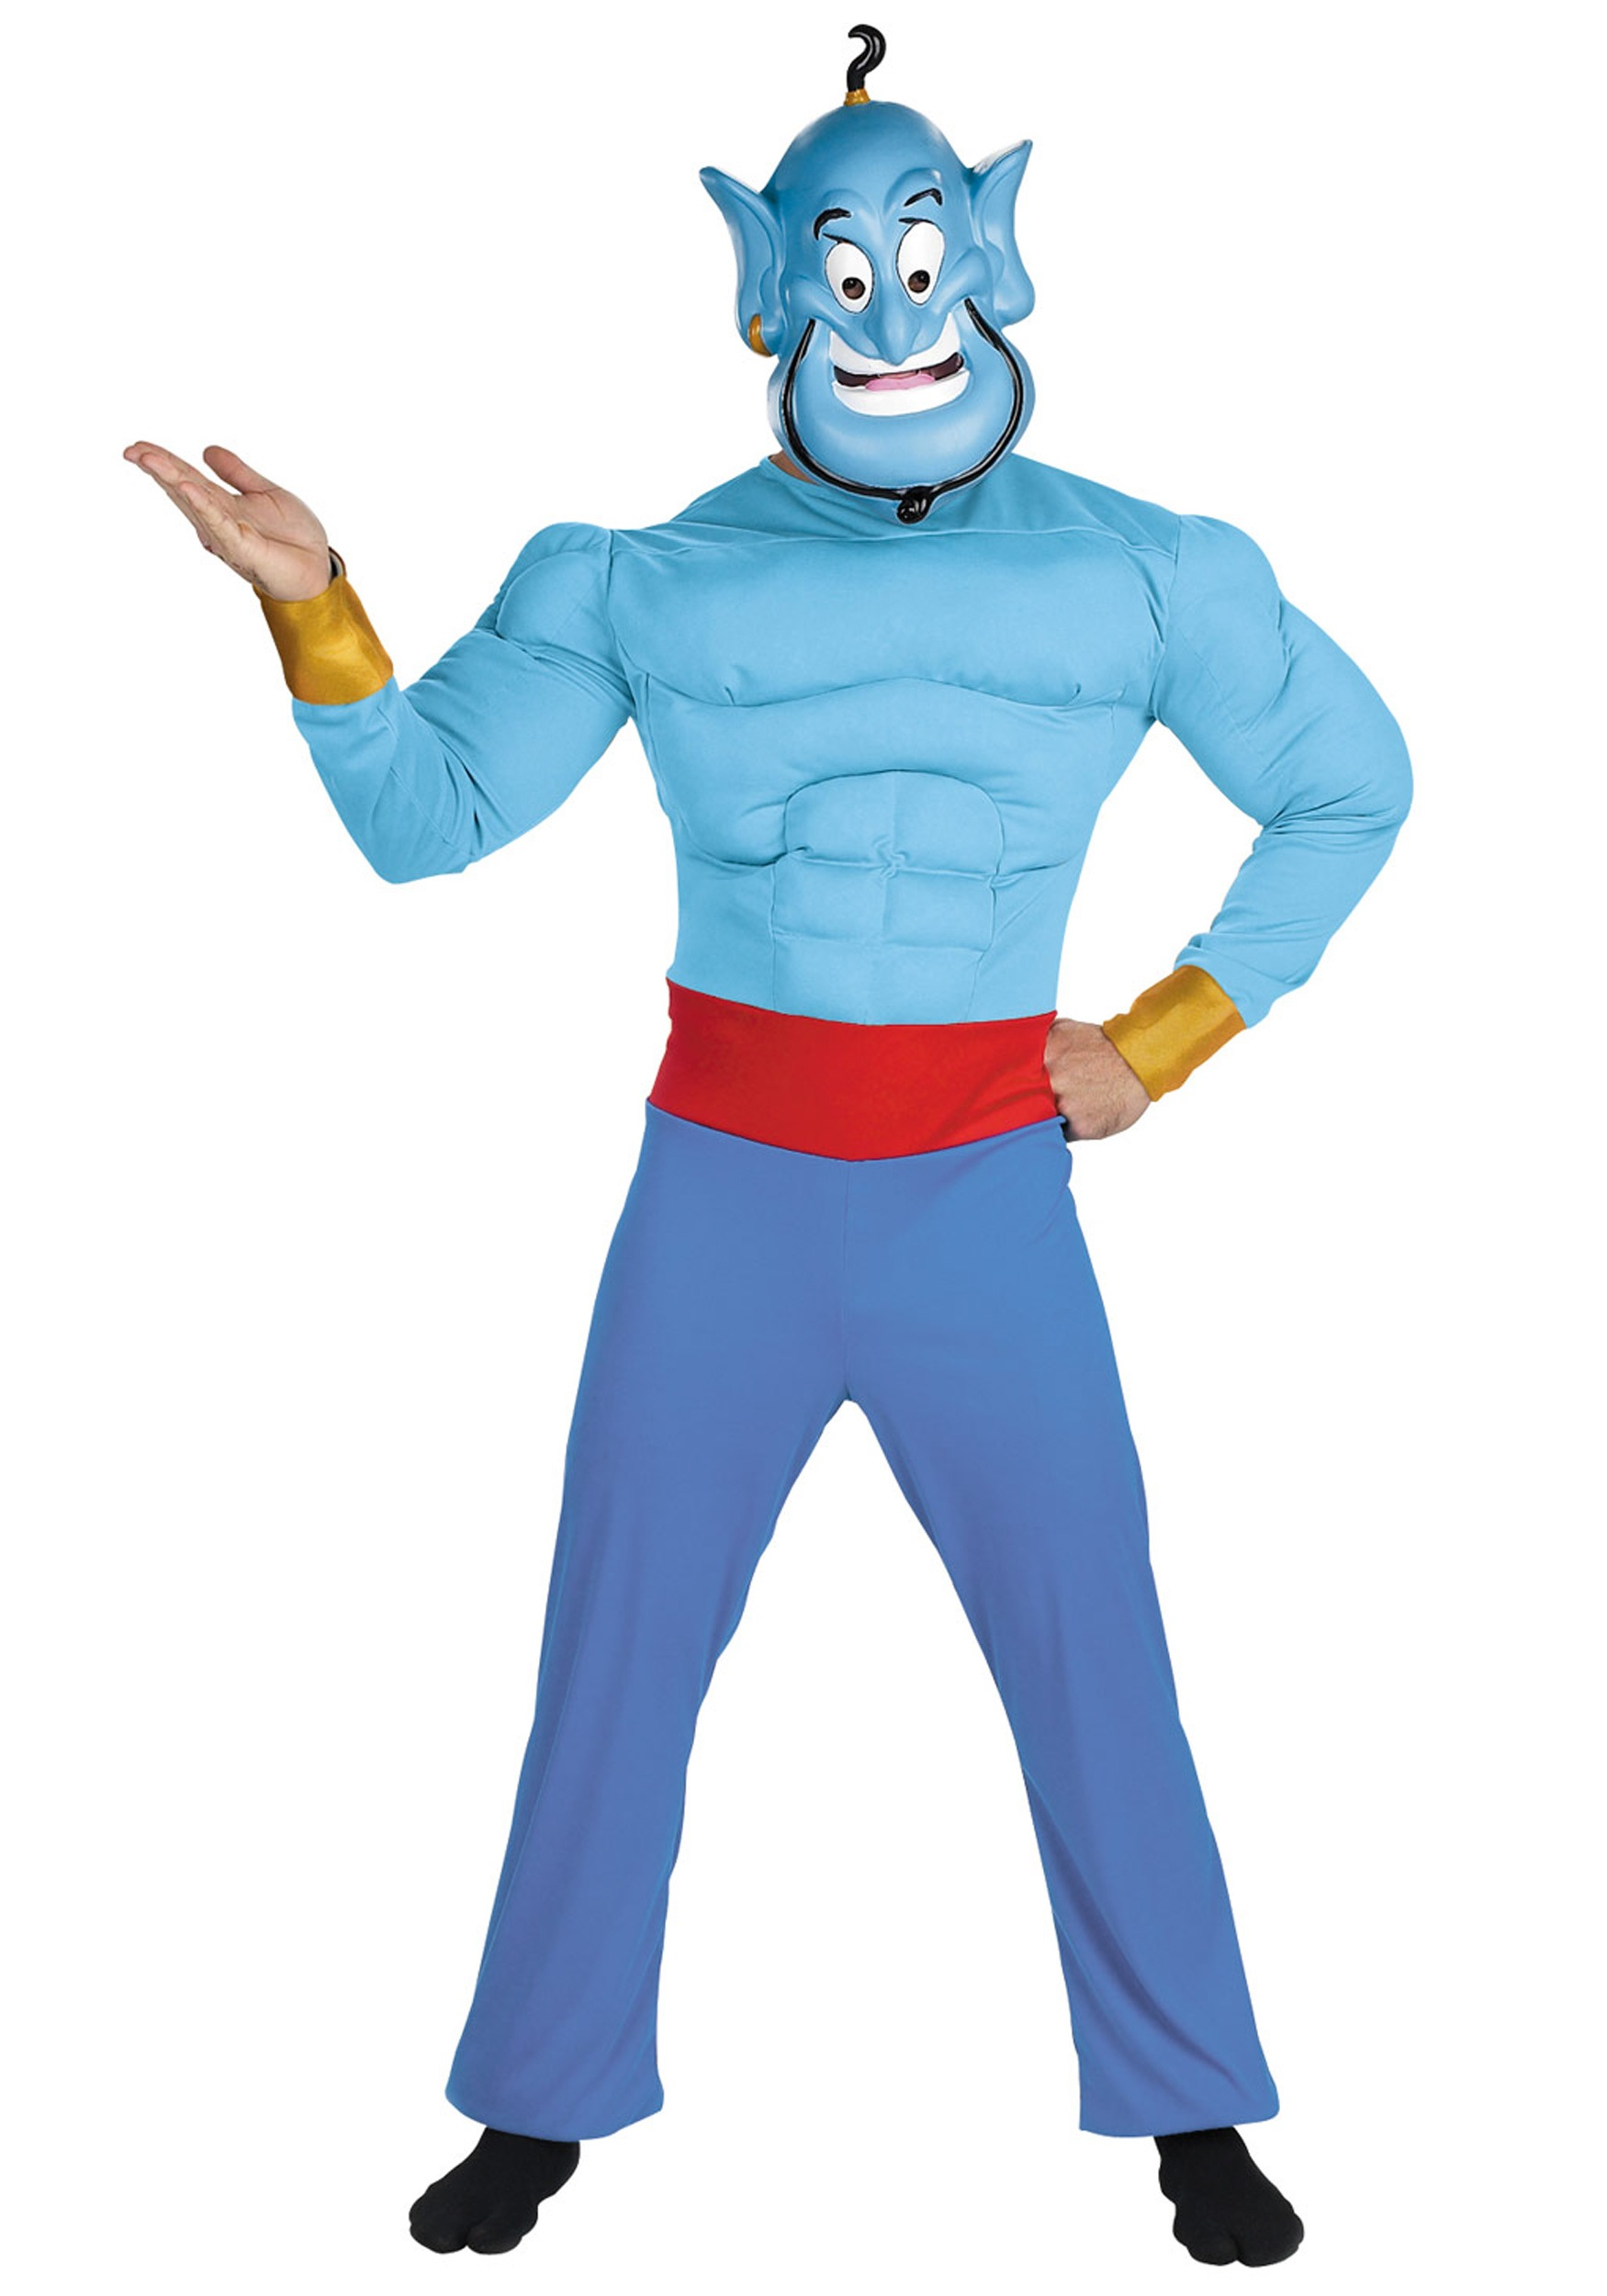 sc 1 st  Halloween Costumes : aladdin costume for boy  - Germanpascual.Com